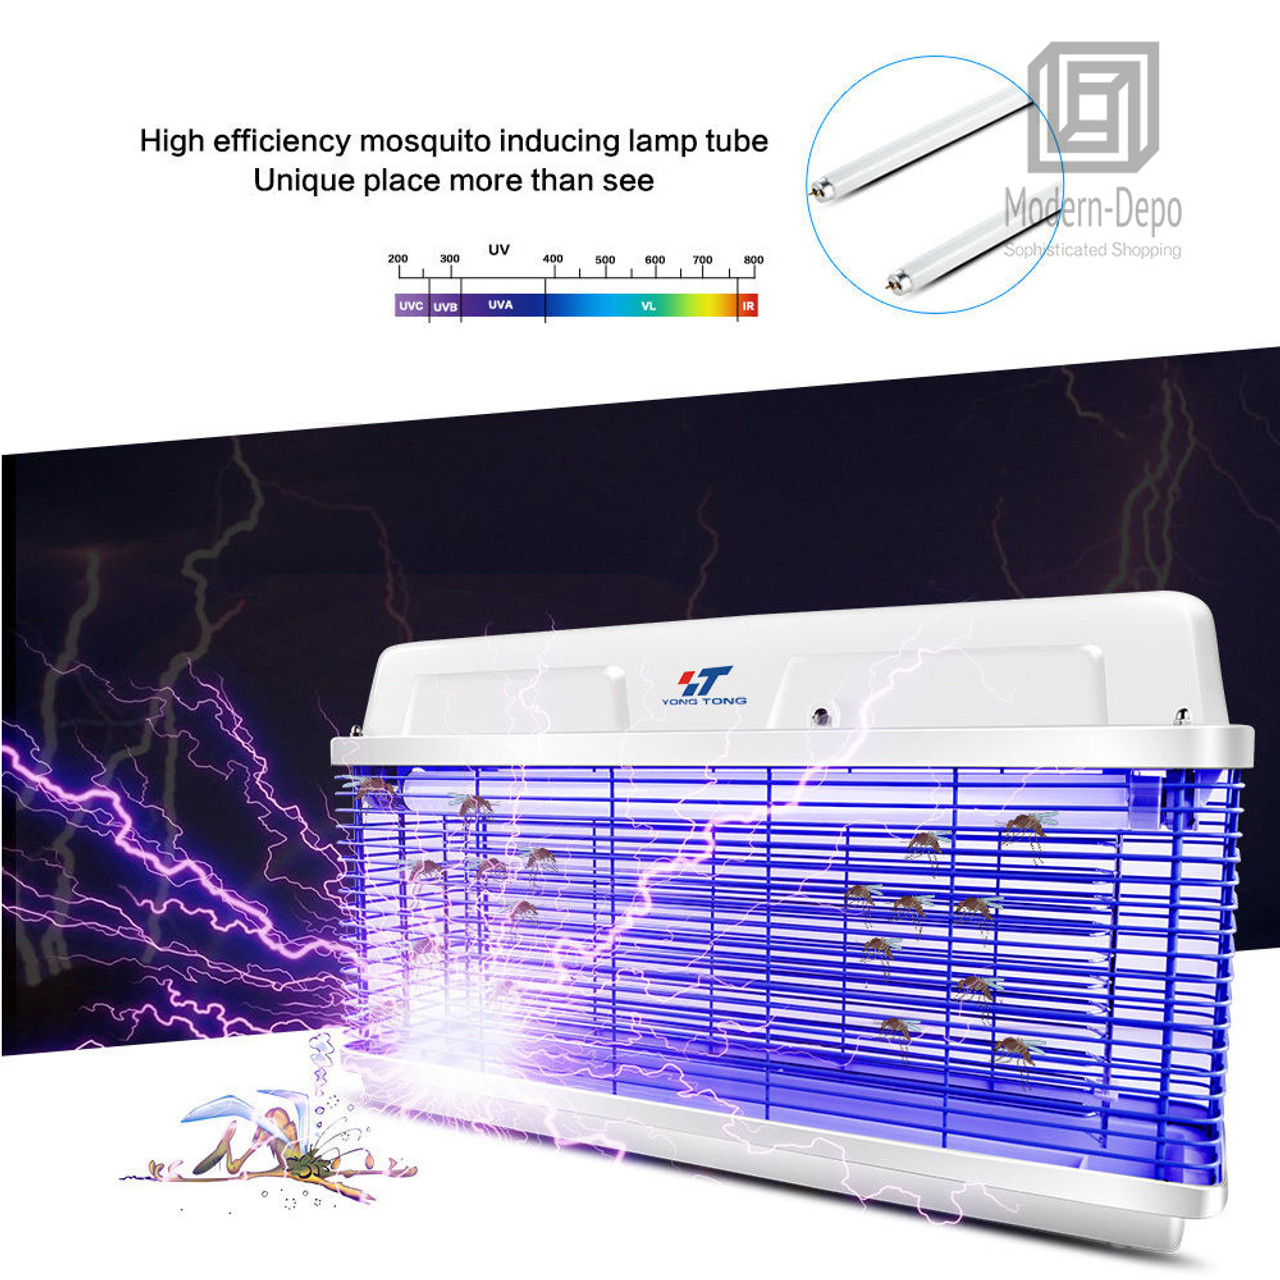 Waterproof Outdoor Bug Zapper | 20W Powerful UV Light Tube Electronic Fly  Pest Control Mosquito Insect Killer (16W & 30W Optional)